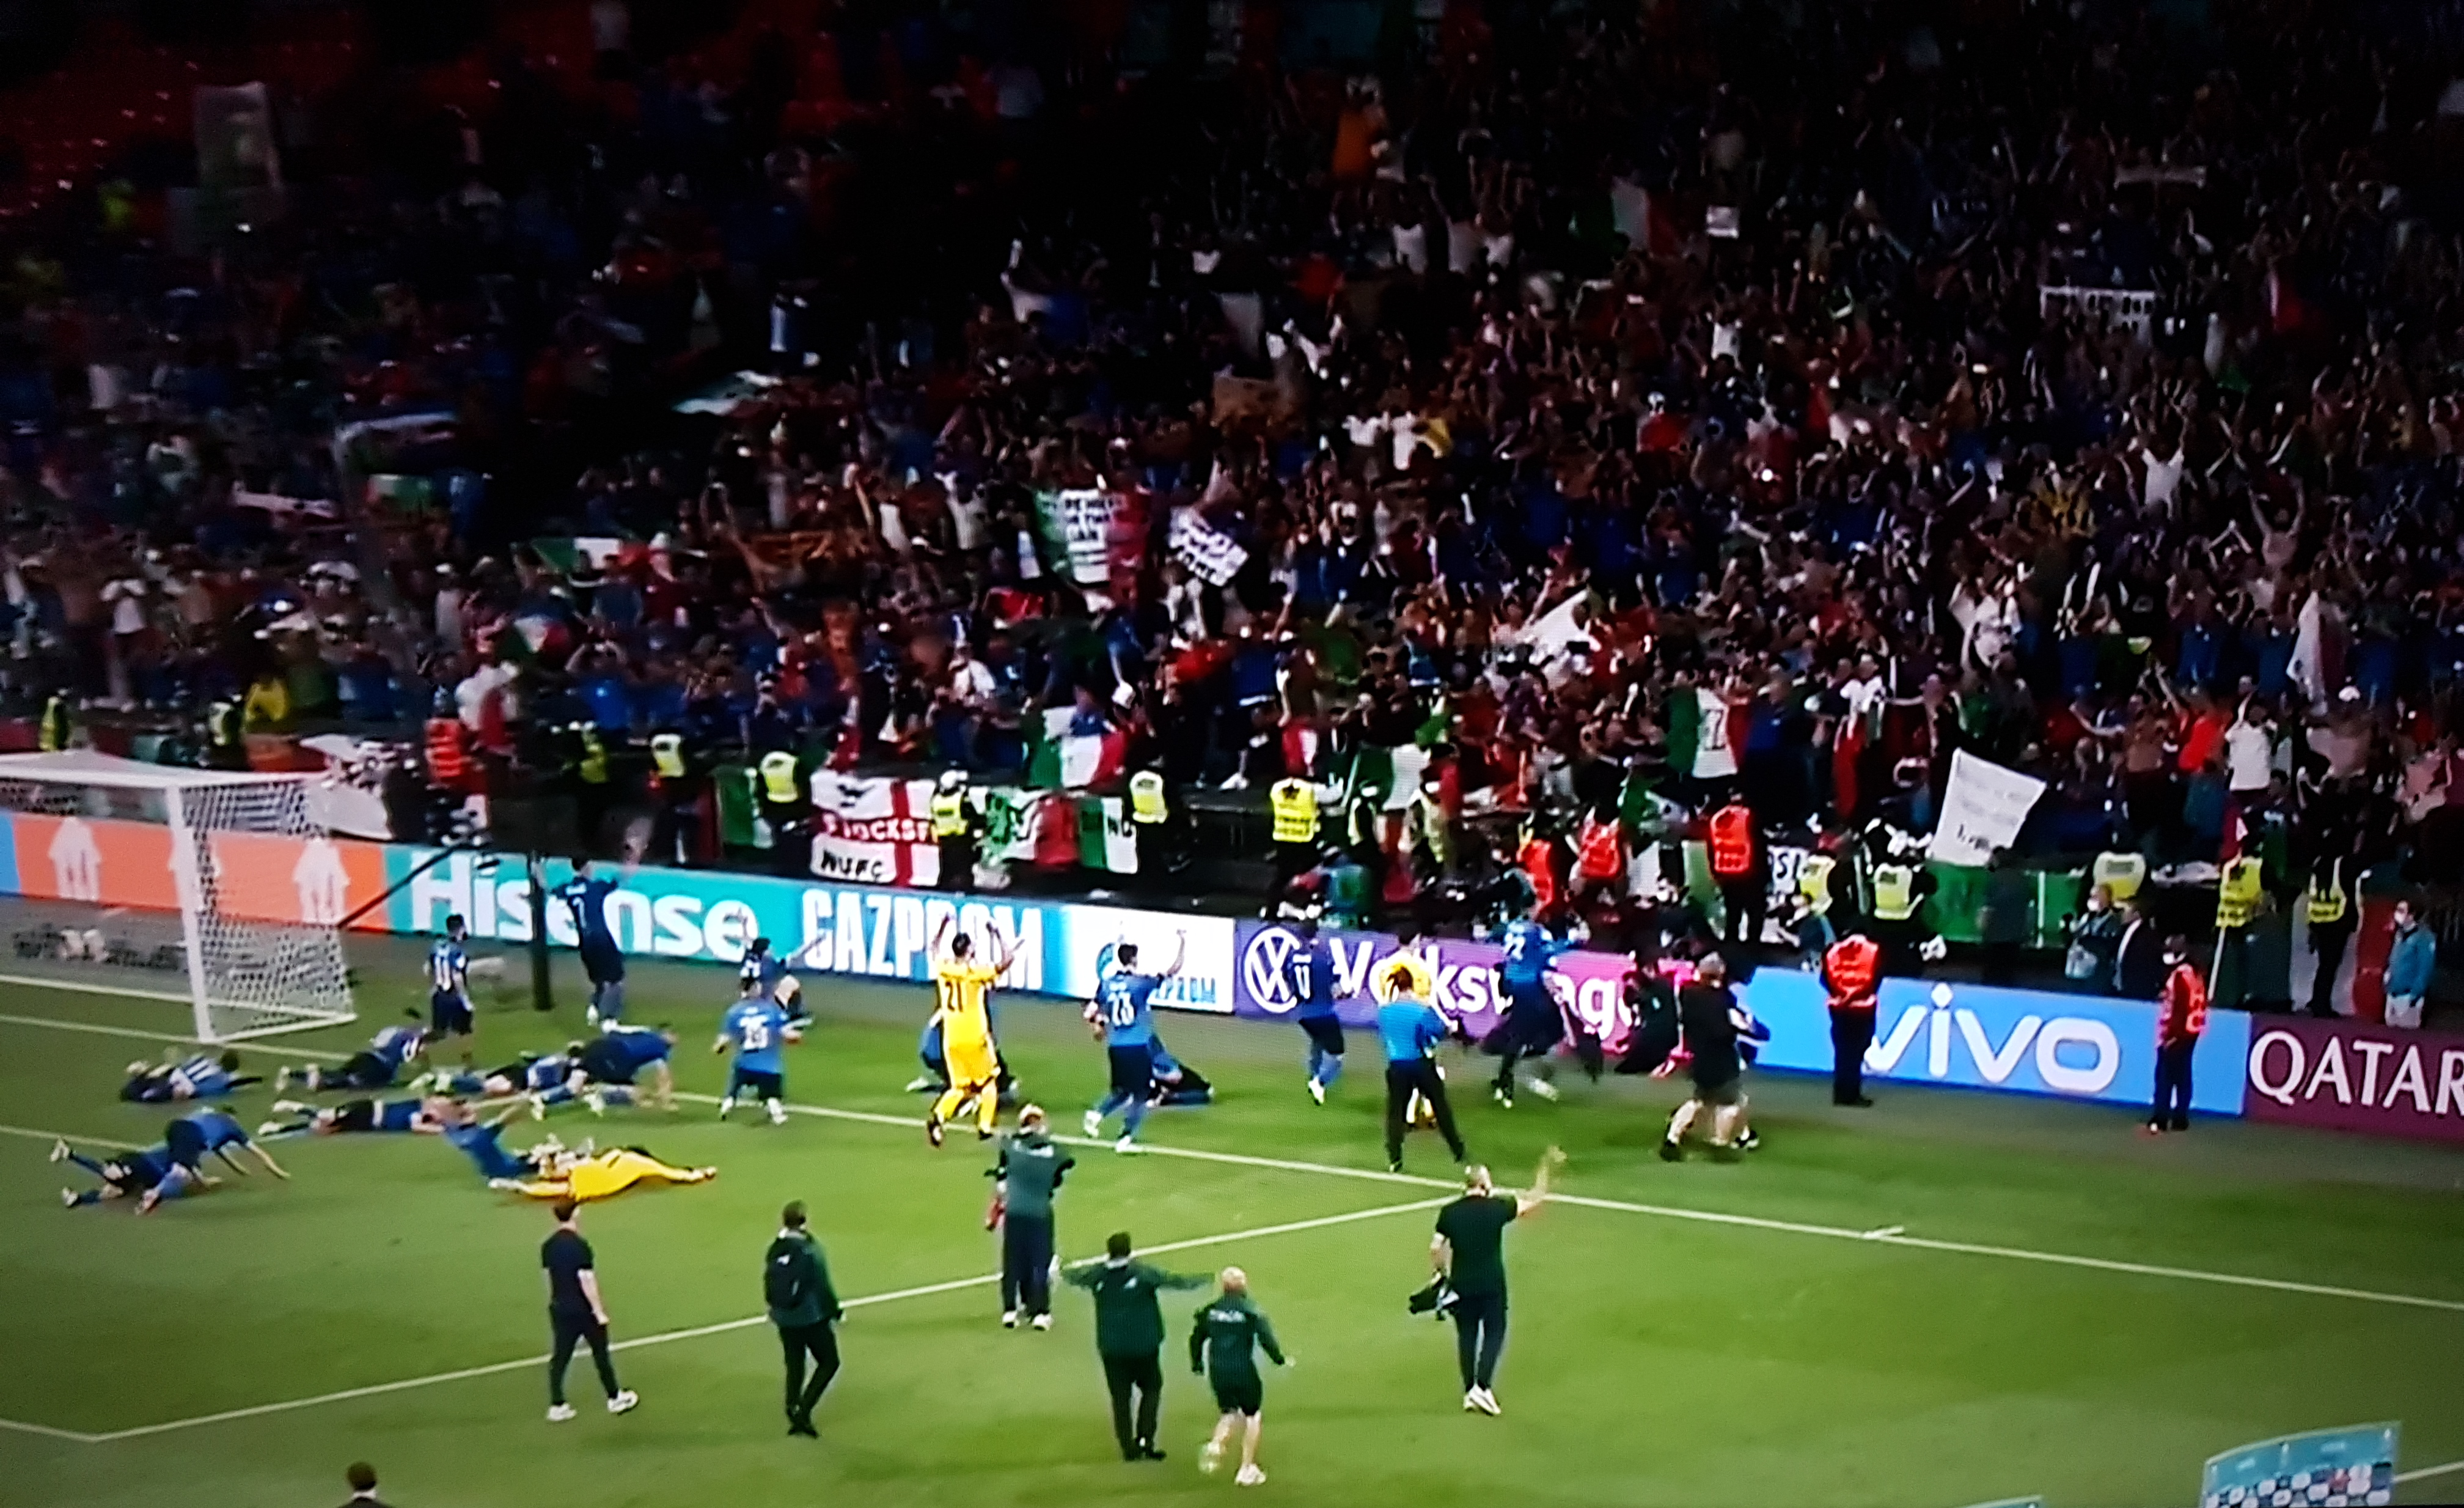 Italia wins European Championships in a penalty thriller against England